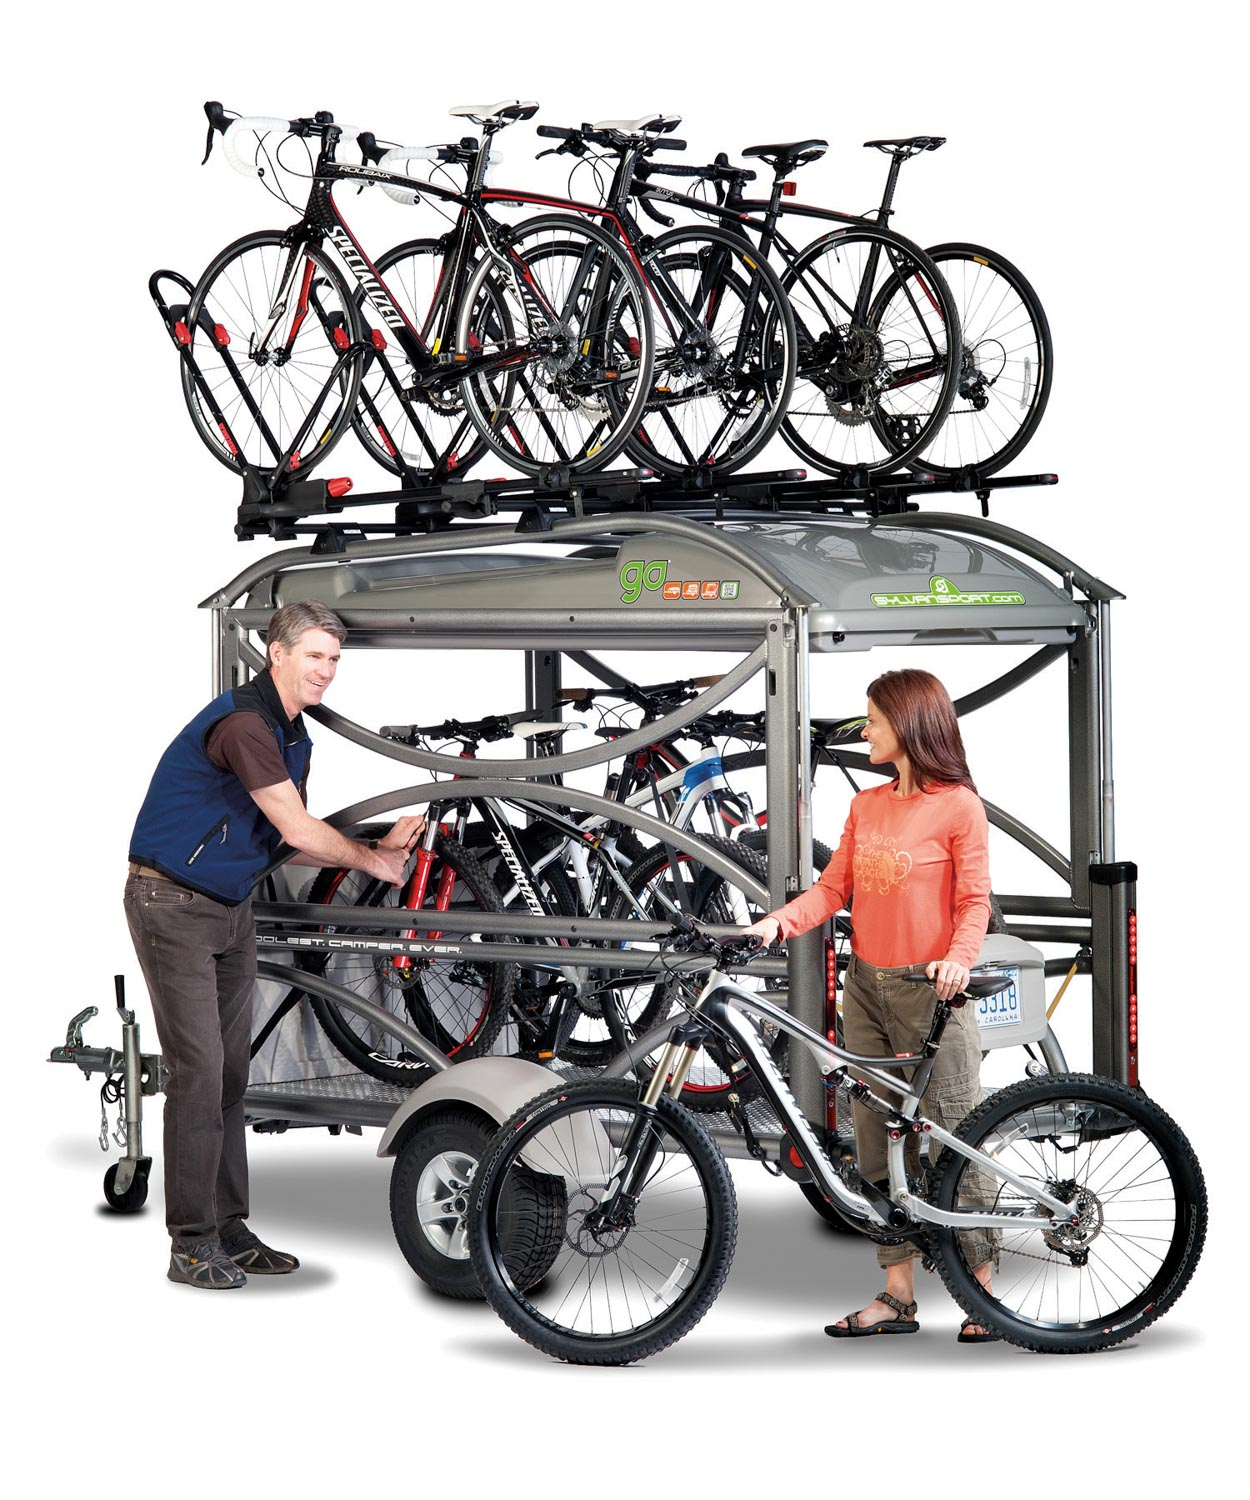 In transport mode the SylvanSport GO can transport up to 12 bikes